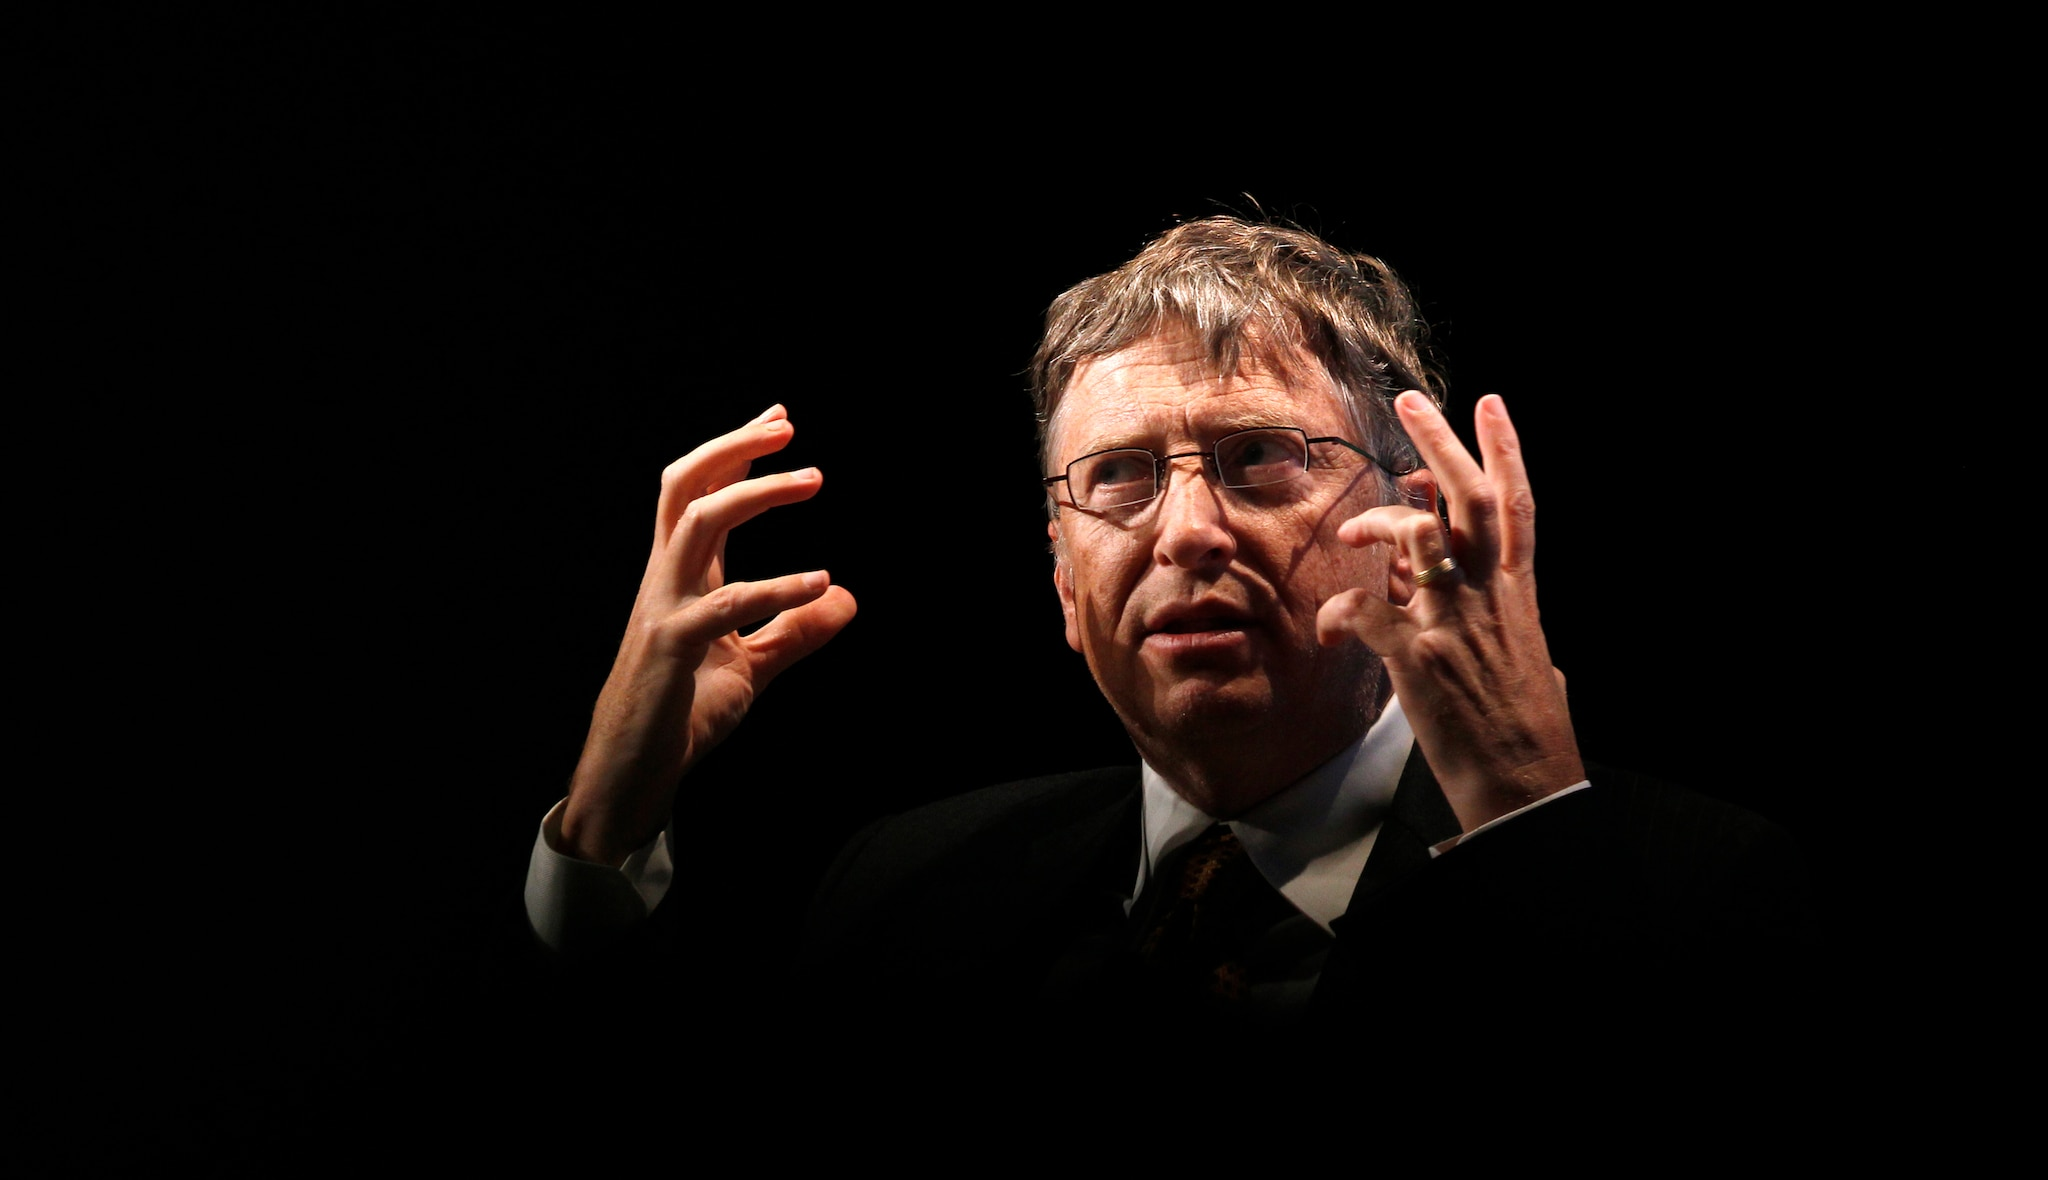 Bill Gates: Net Worth: $98 billion. With his wife Melinda, Bill Gates chairs the Bill & Melinda Gates Foundation, the world's largest private charitable foundation. In late 2016, Gates announced the launch of a $1 billion Breakthrough Energy investment fund with about 20 other people. To date, Gates has donated $35.8 billion worth of Microsoft stock to the Gates Foundation.